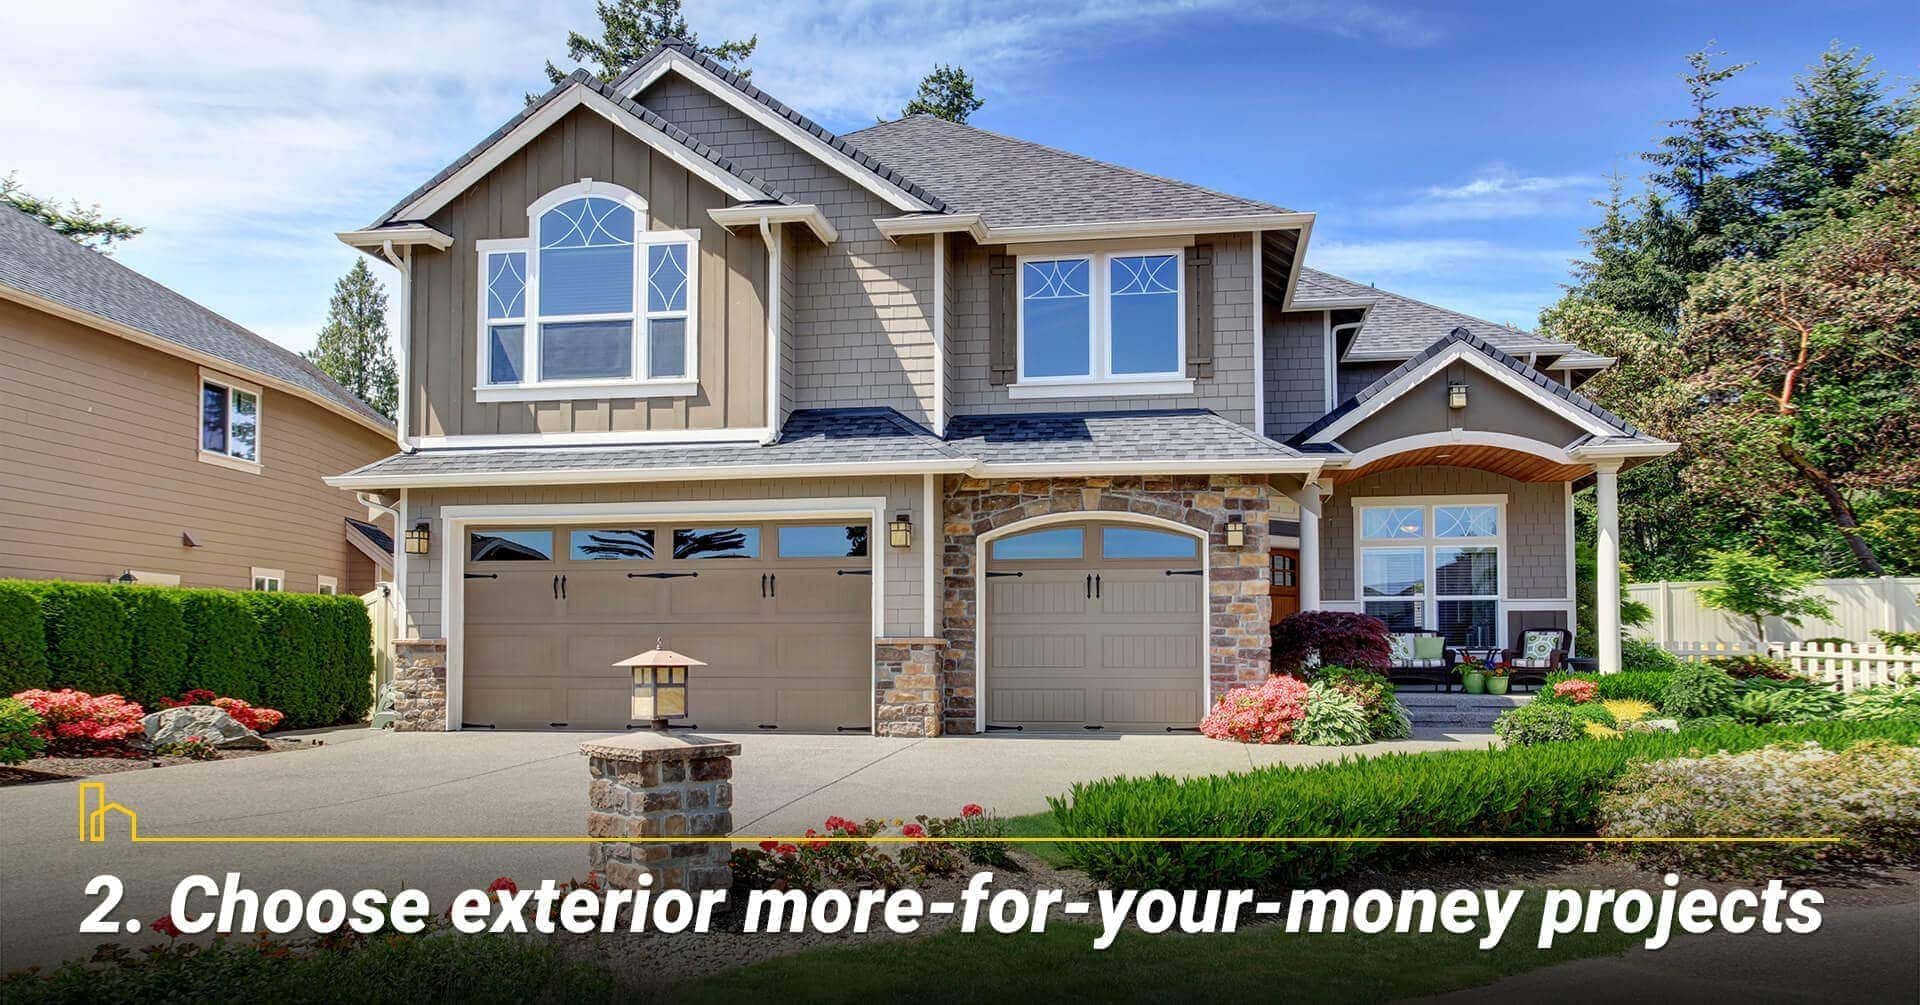 Choose exterior more-for-your-money projects